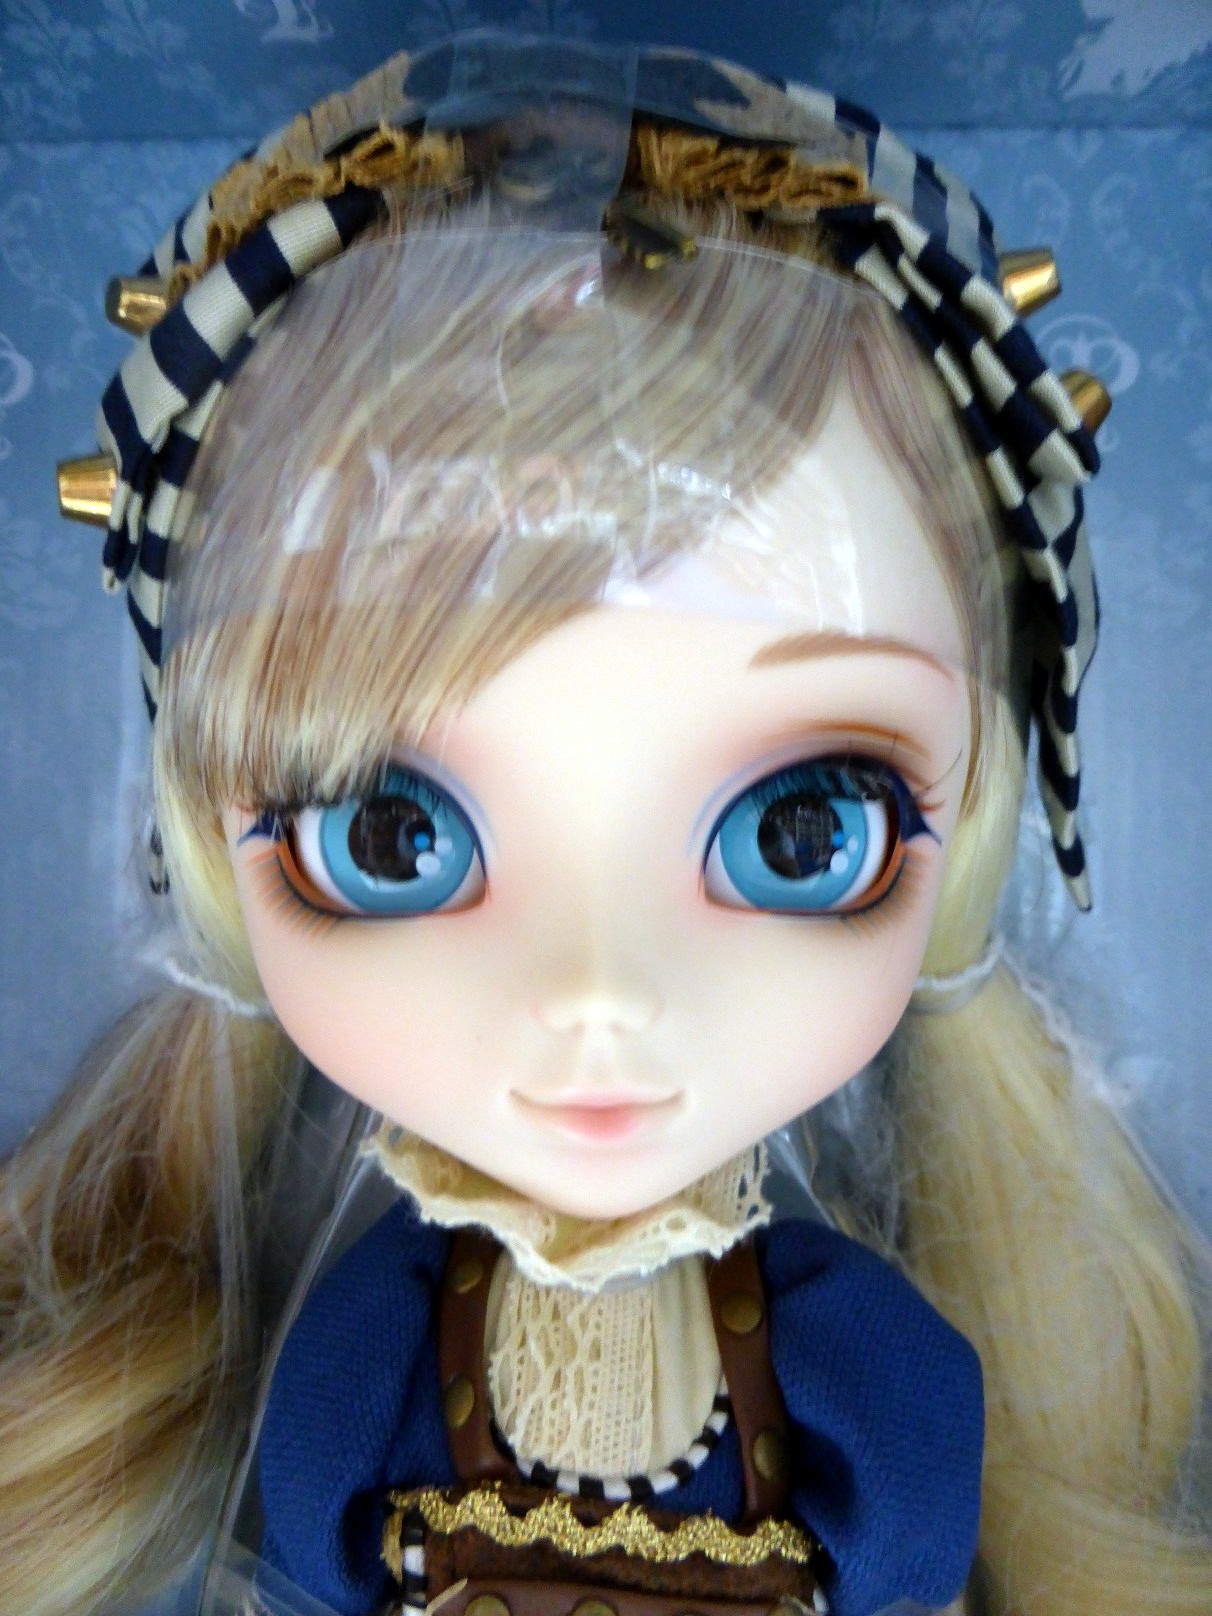 [Juin 2015] Pullip Alice in Steampunk World - Page 2 P-151_2_1